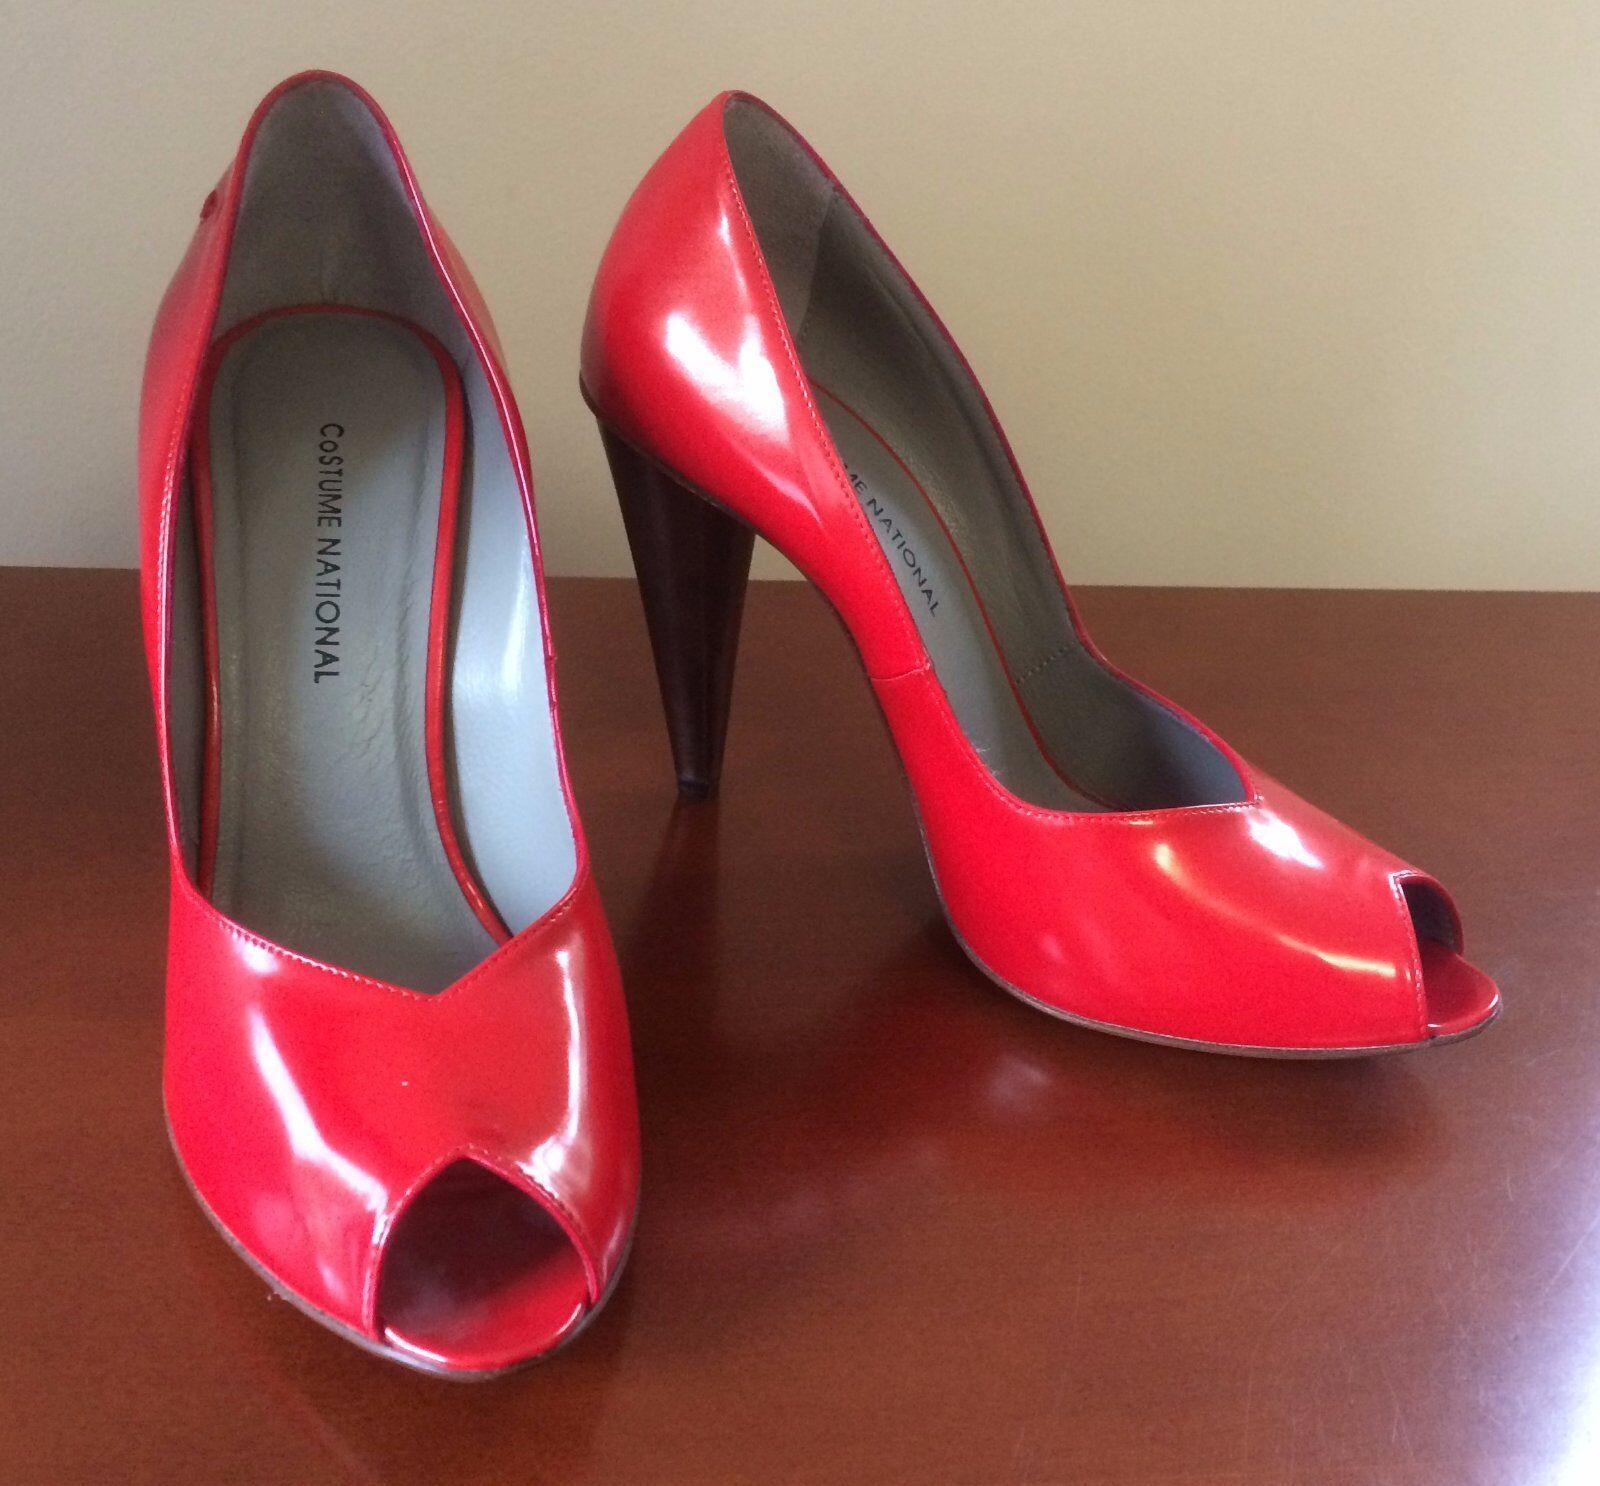 NEW CoSTUME NATIONAL NATIONAL NATIONAL Coral High Heels - UK4, EU37 78457f